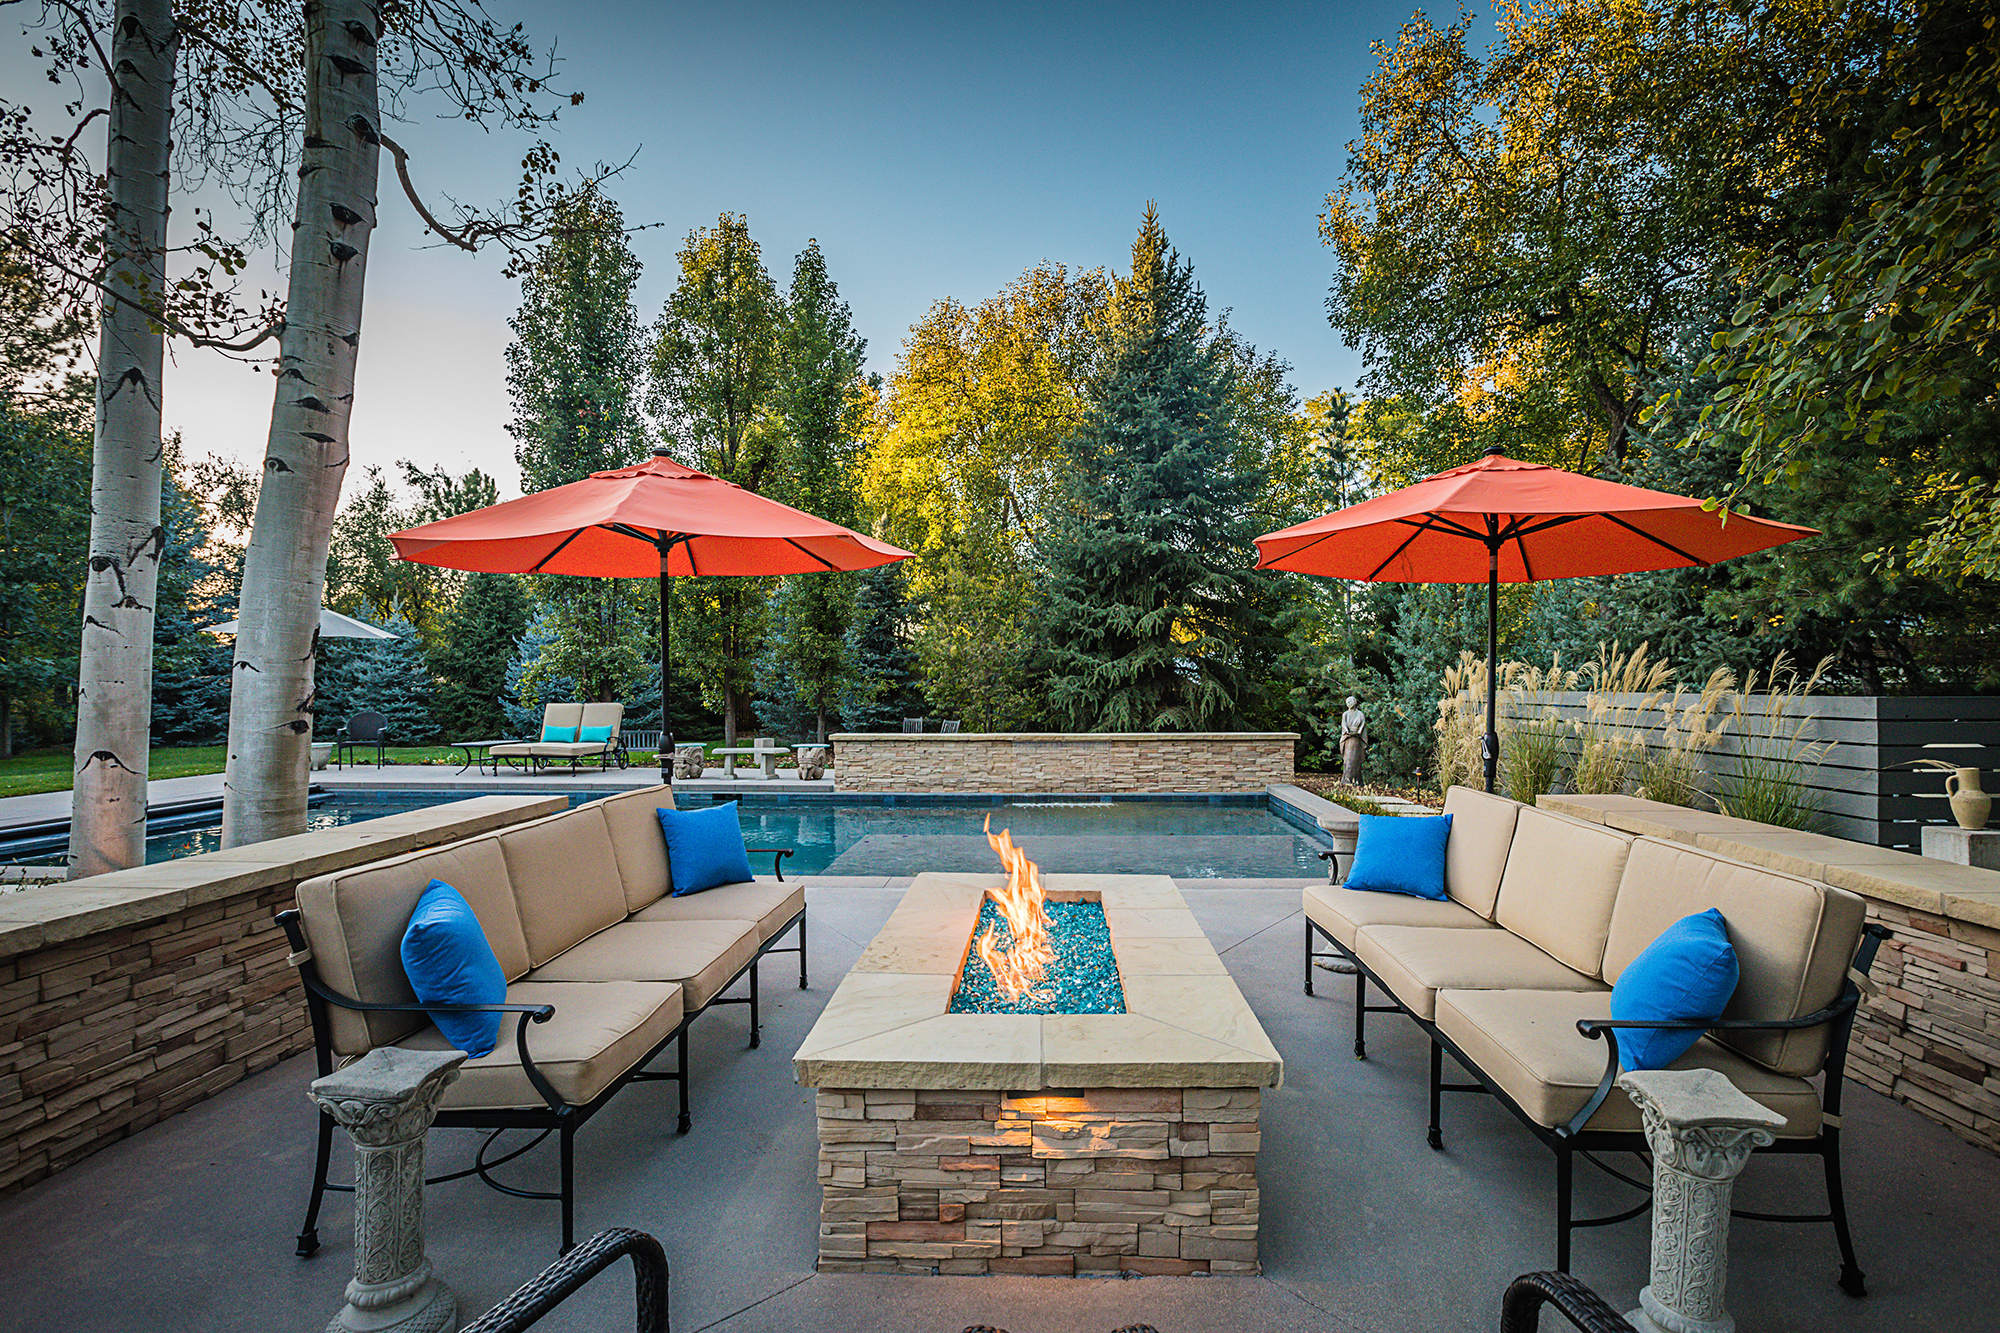 Residential Real-Estate Photograph of a luxury backyard at dusk. Luxury Architecture Photography.